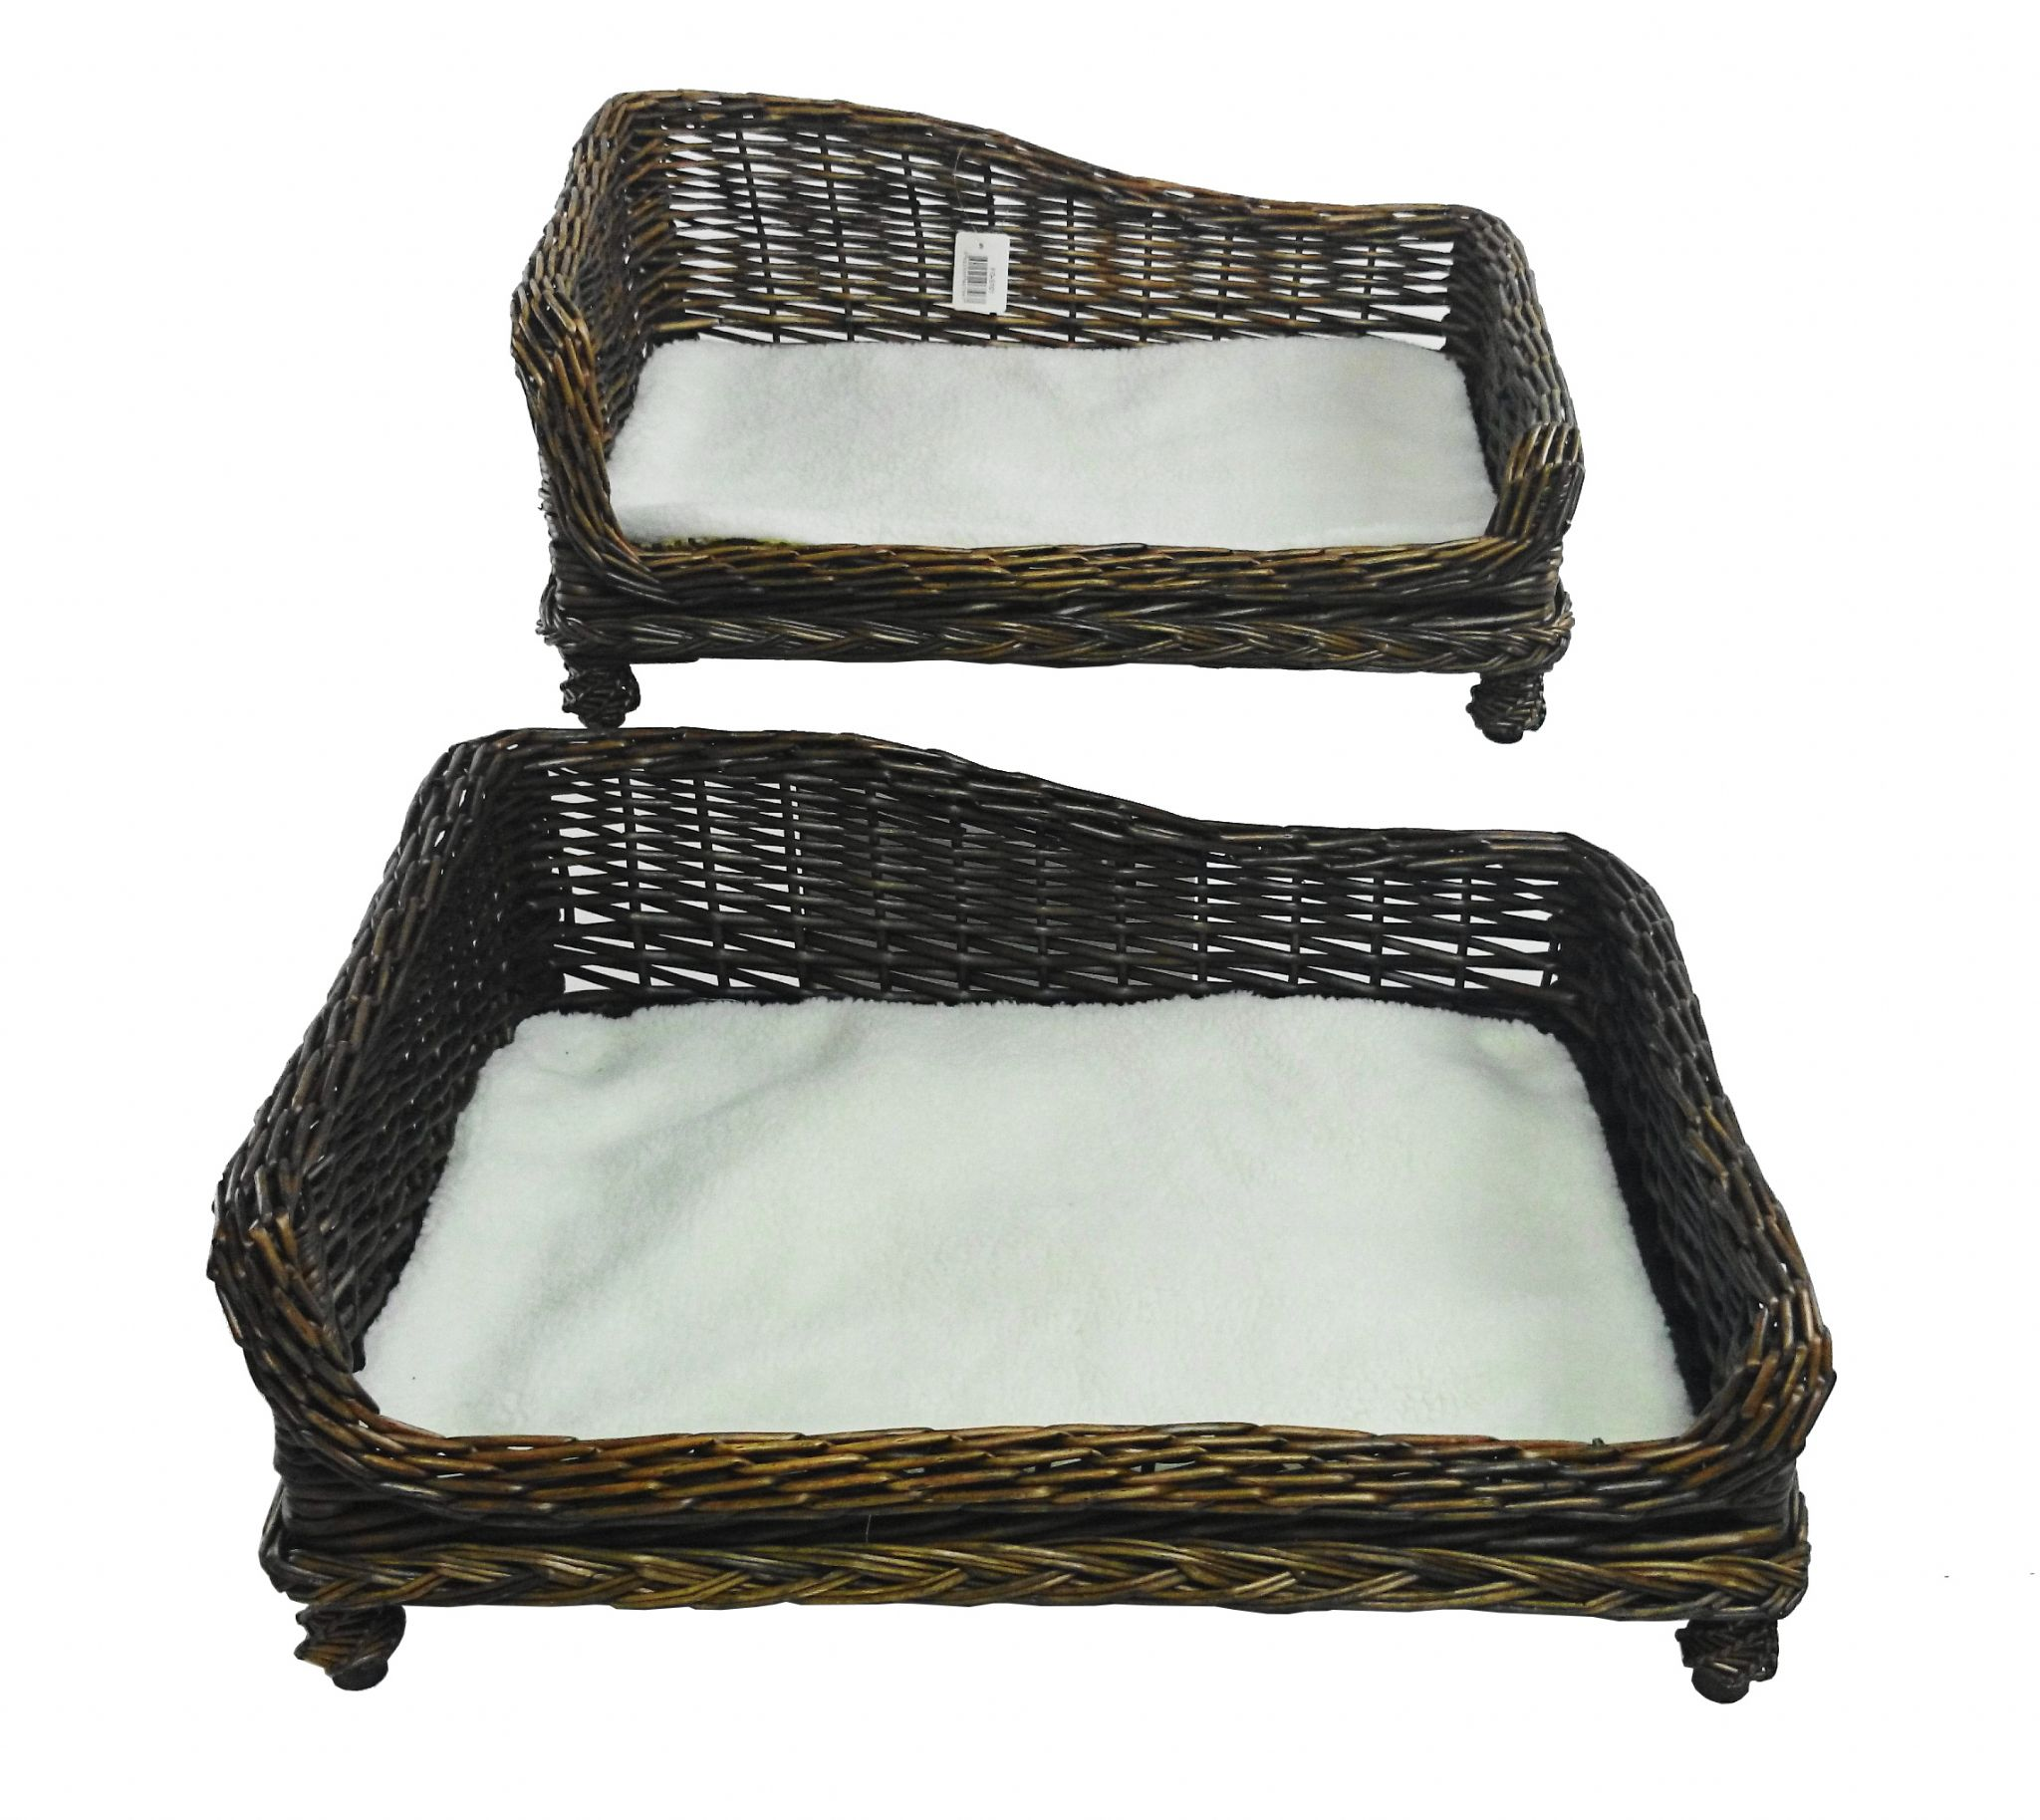 Large Big Huge Xl Wicker Dogs Puppies Pet Bed Basket Seat